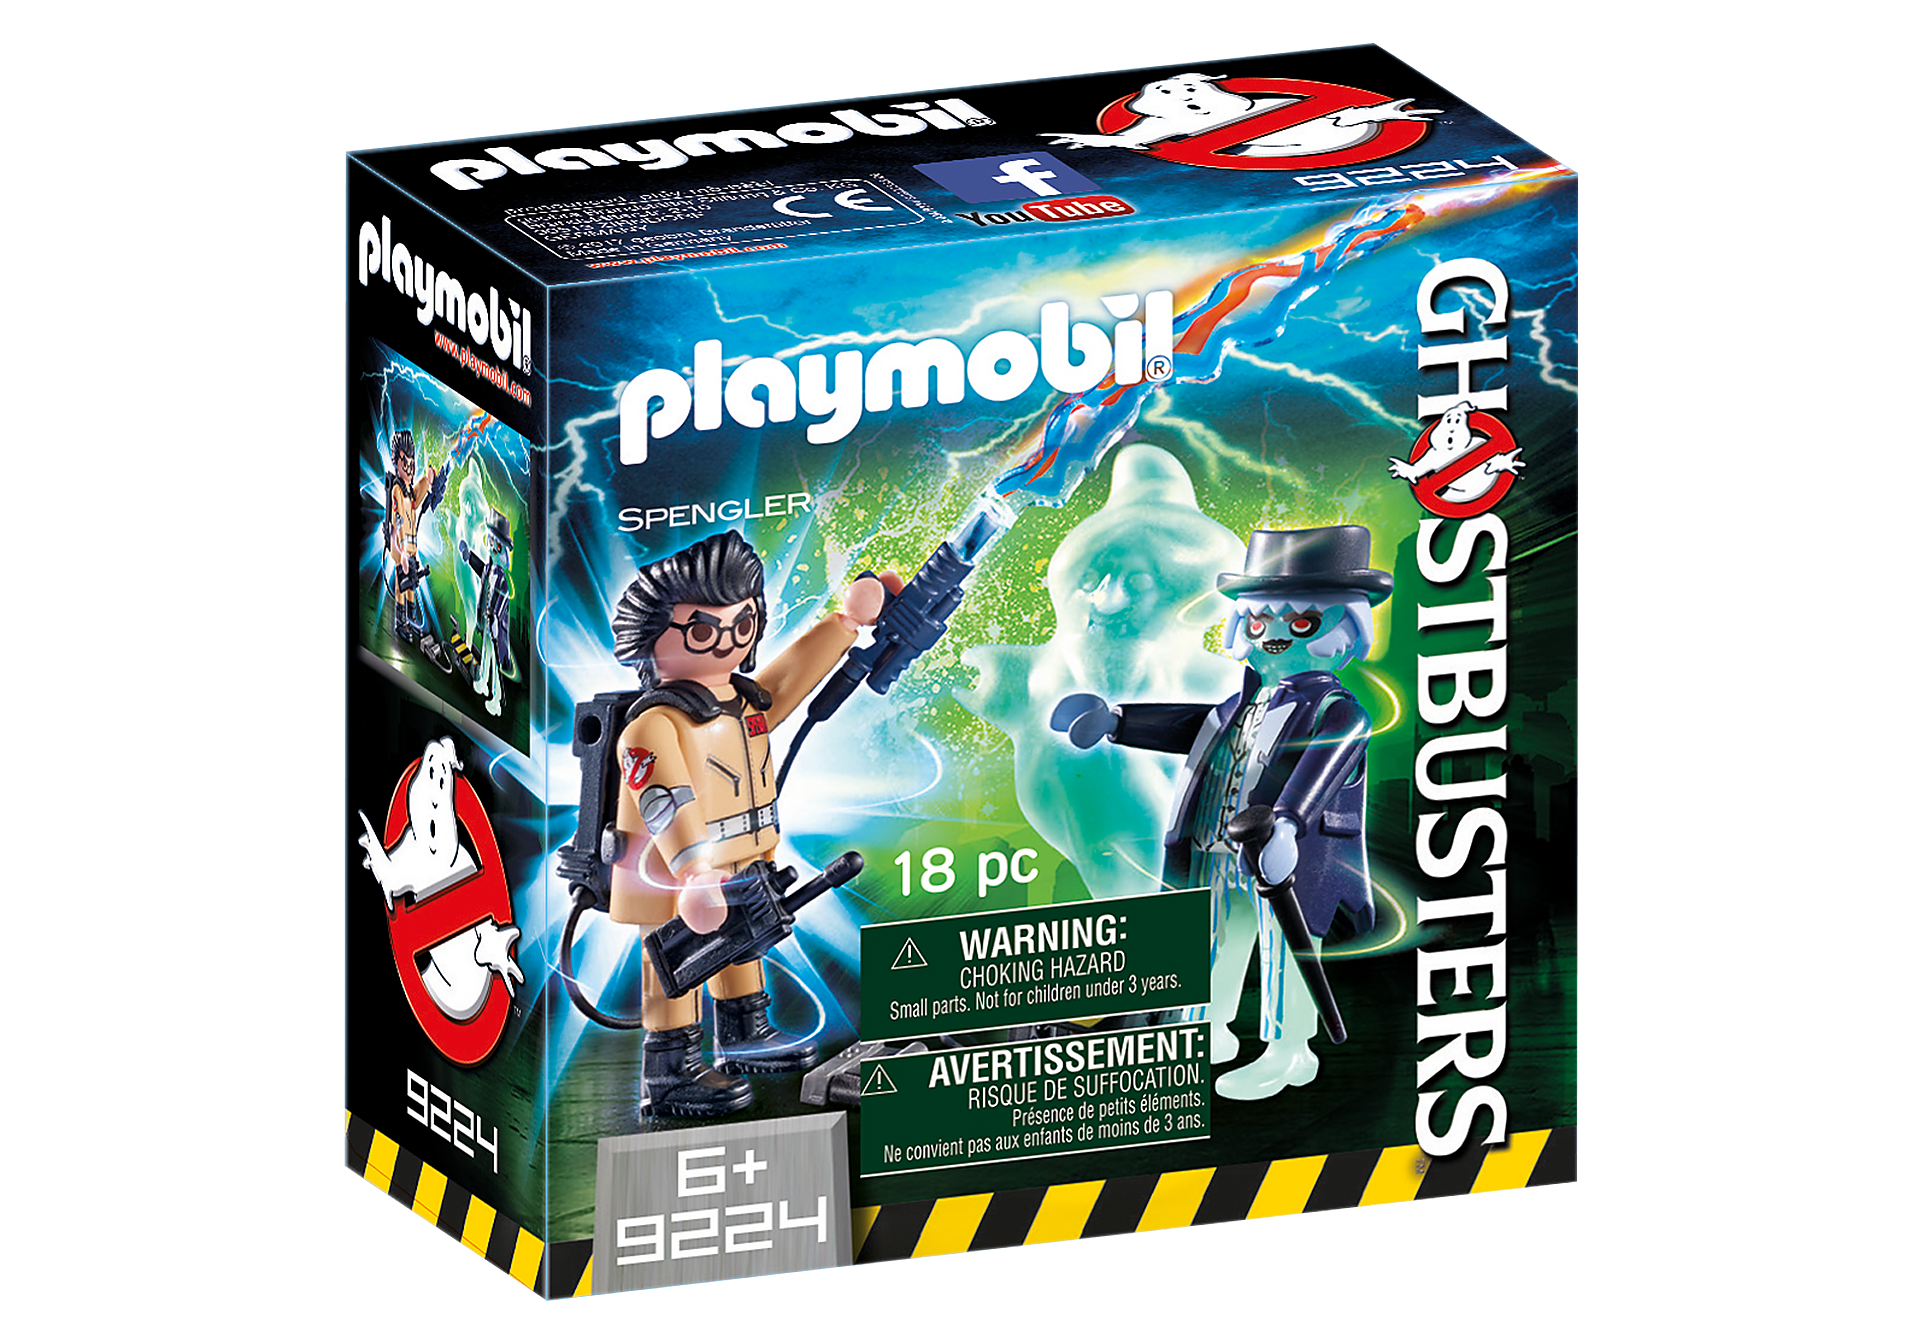 http://media.playmobil.com/i/playmobil/9224_product_box_front/Spengler och spöke